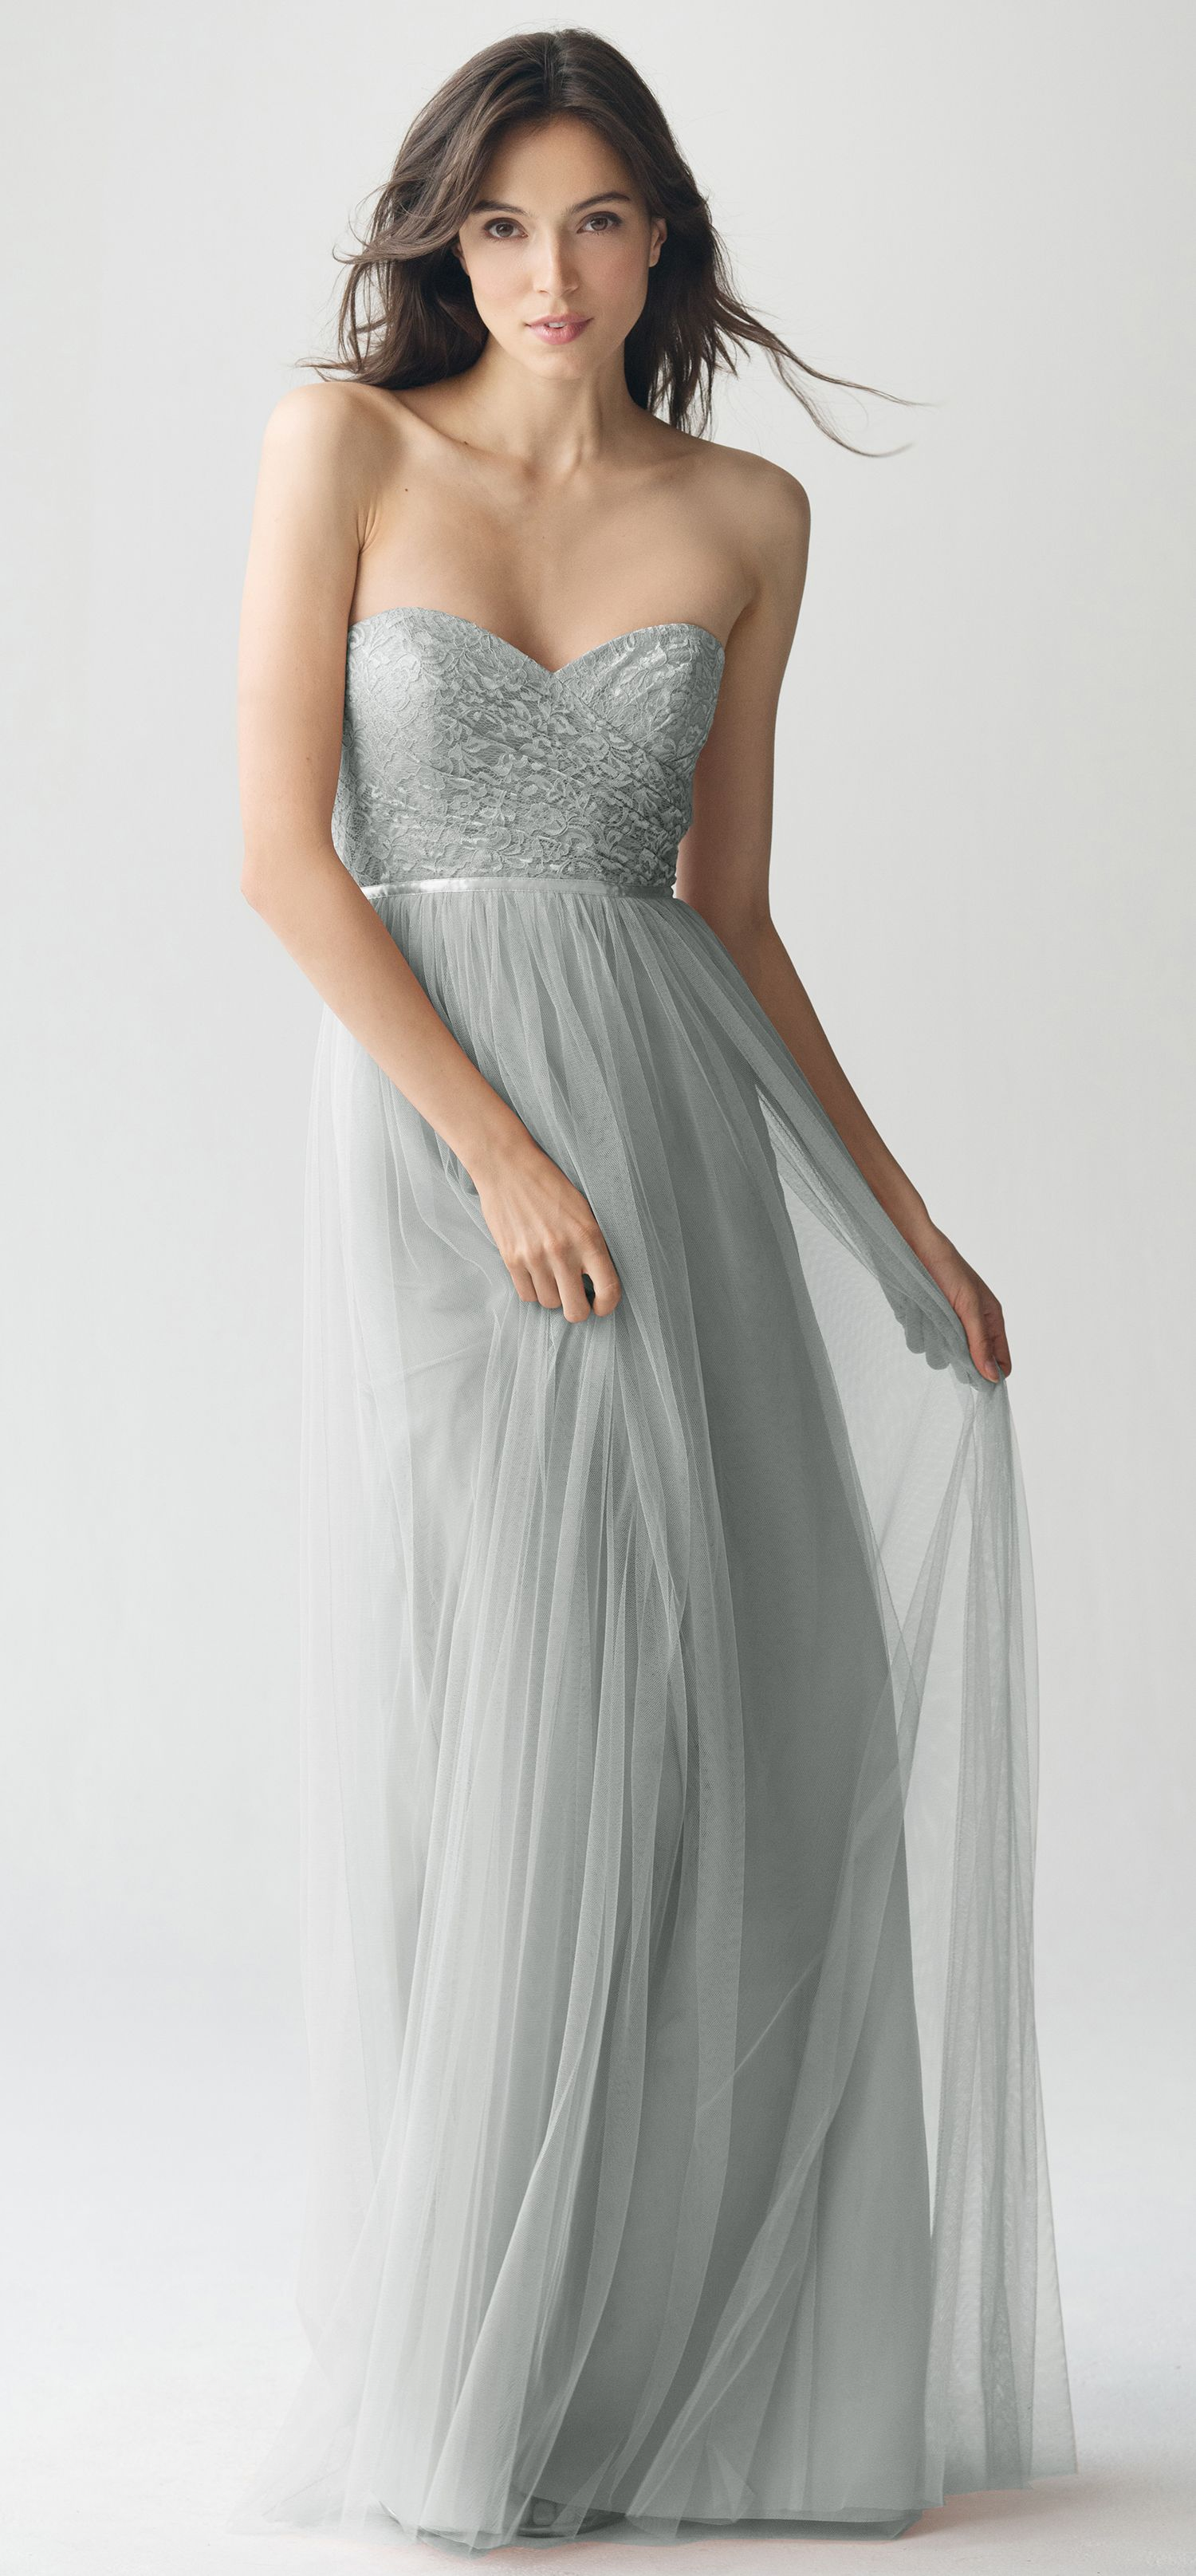 b07710d6d55 Talia Bridesmaid Dress in Morning Mist Lace + Soft Tulle by Jenny ...